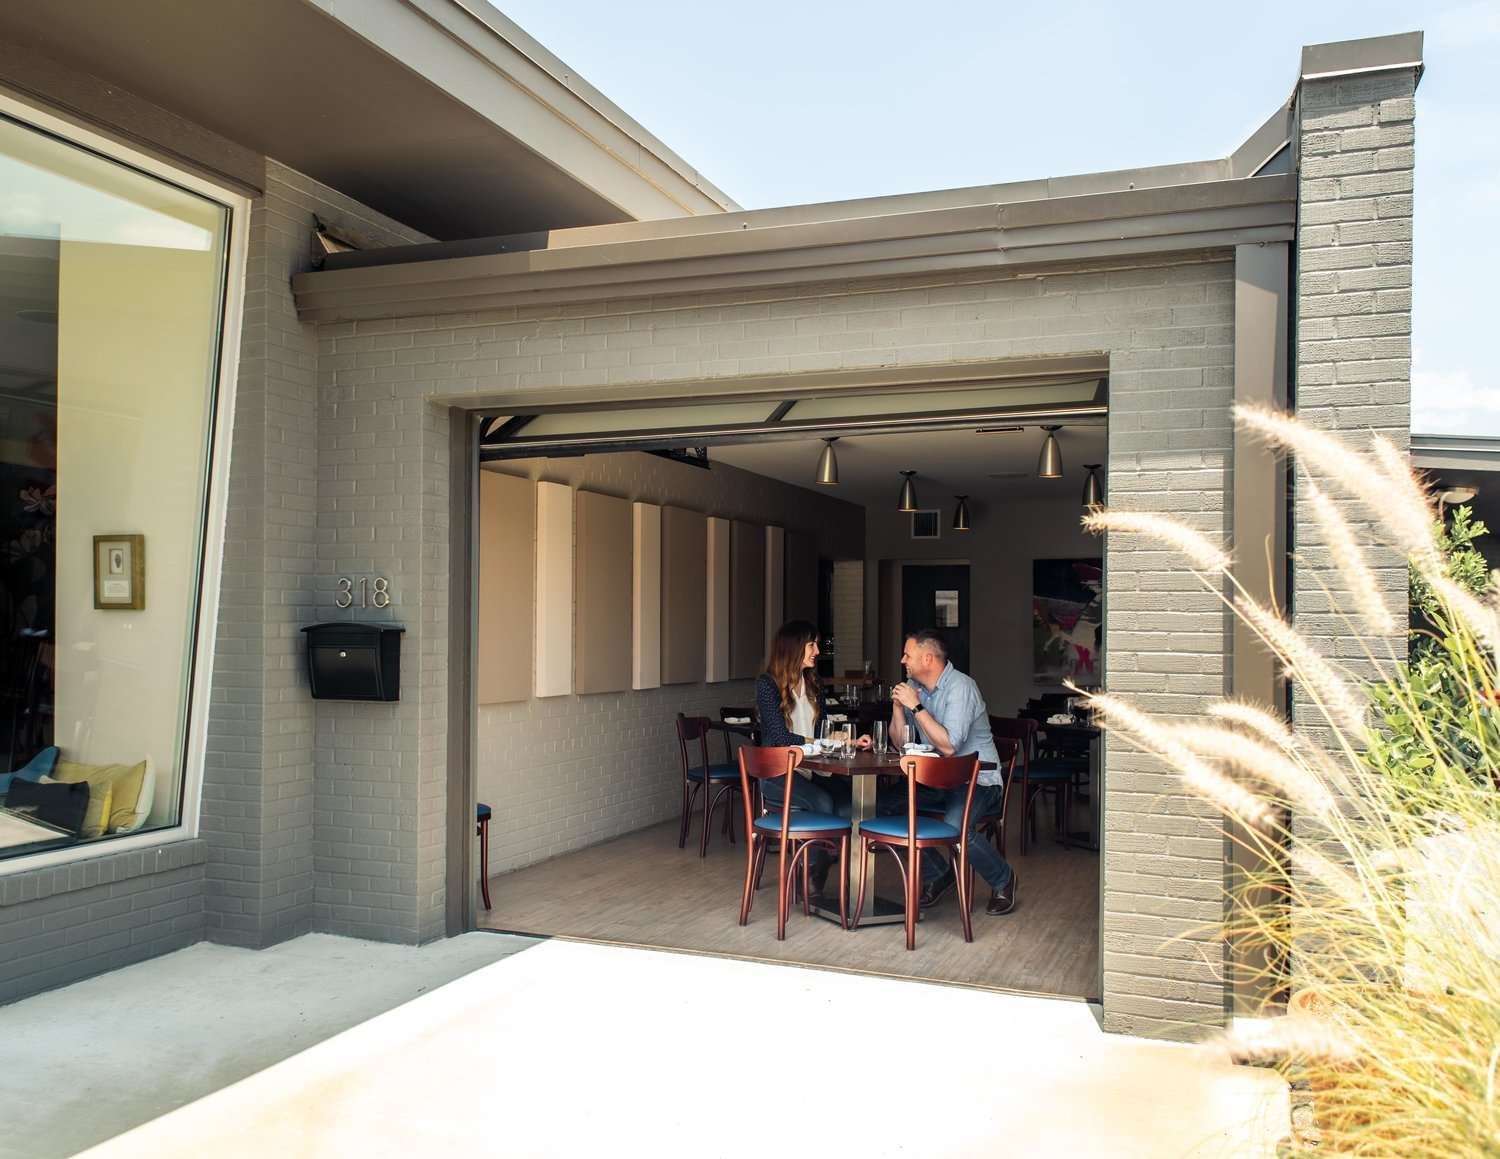 The garage door opens to let the outside in.